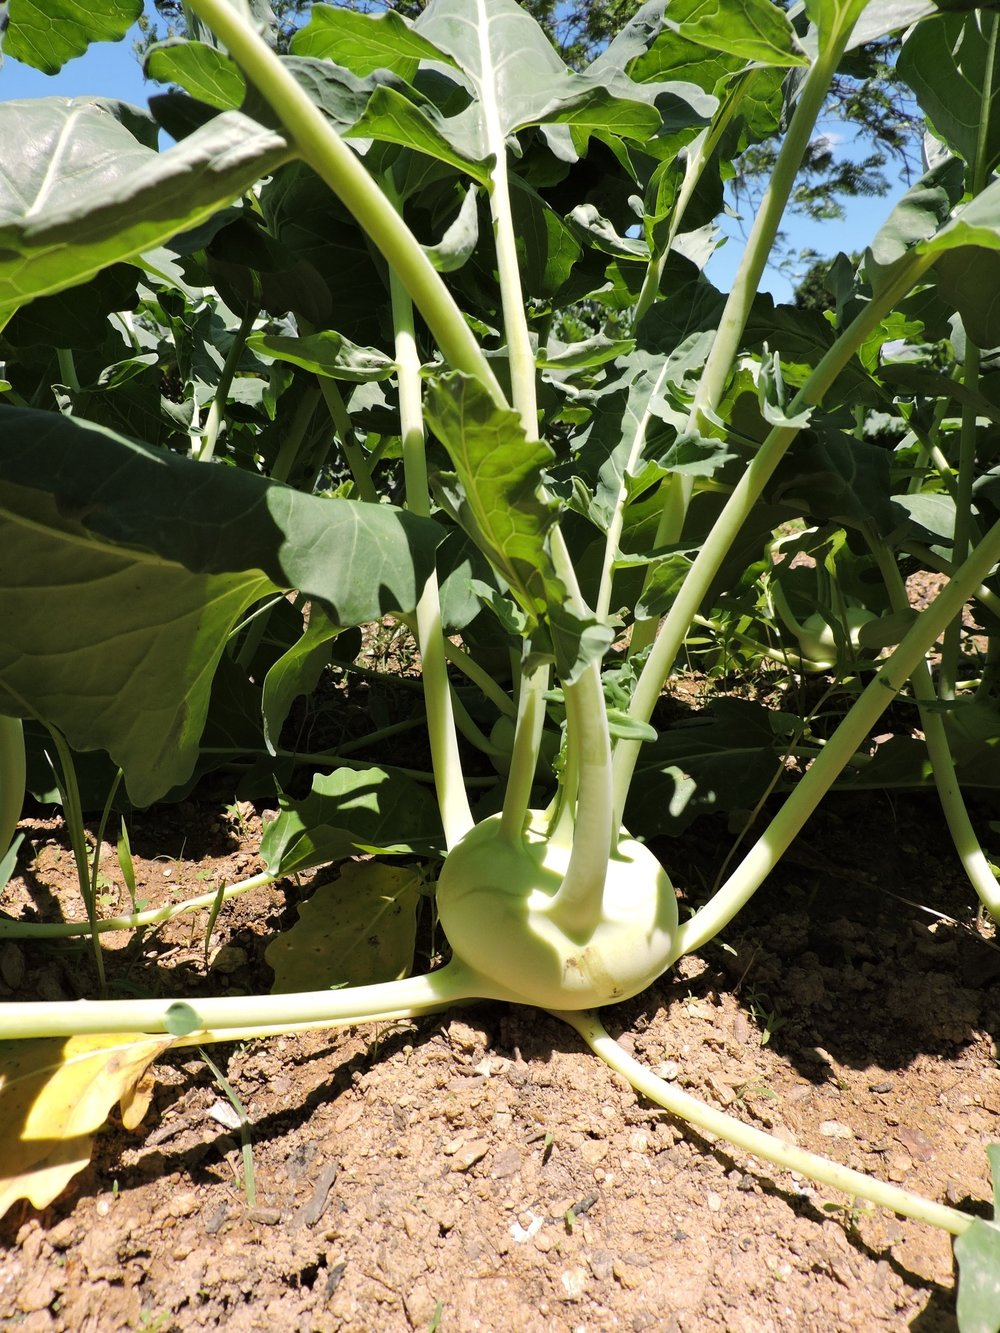 A kohlrabi in the ground